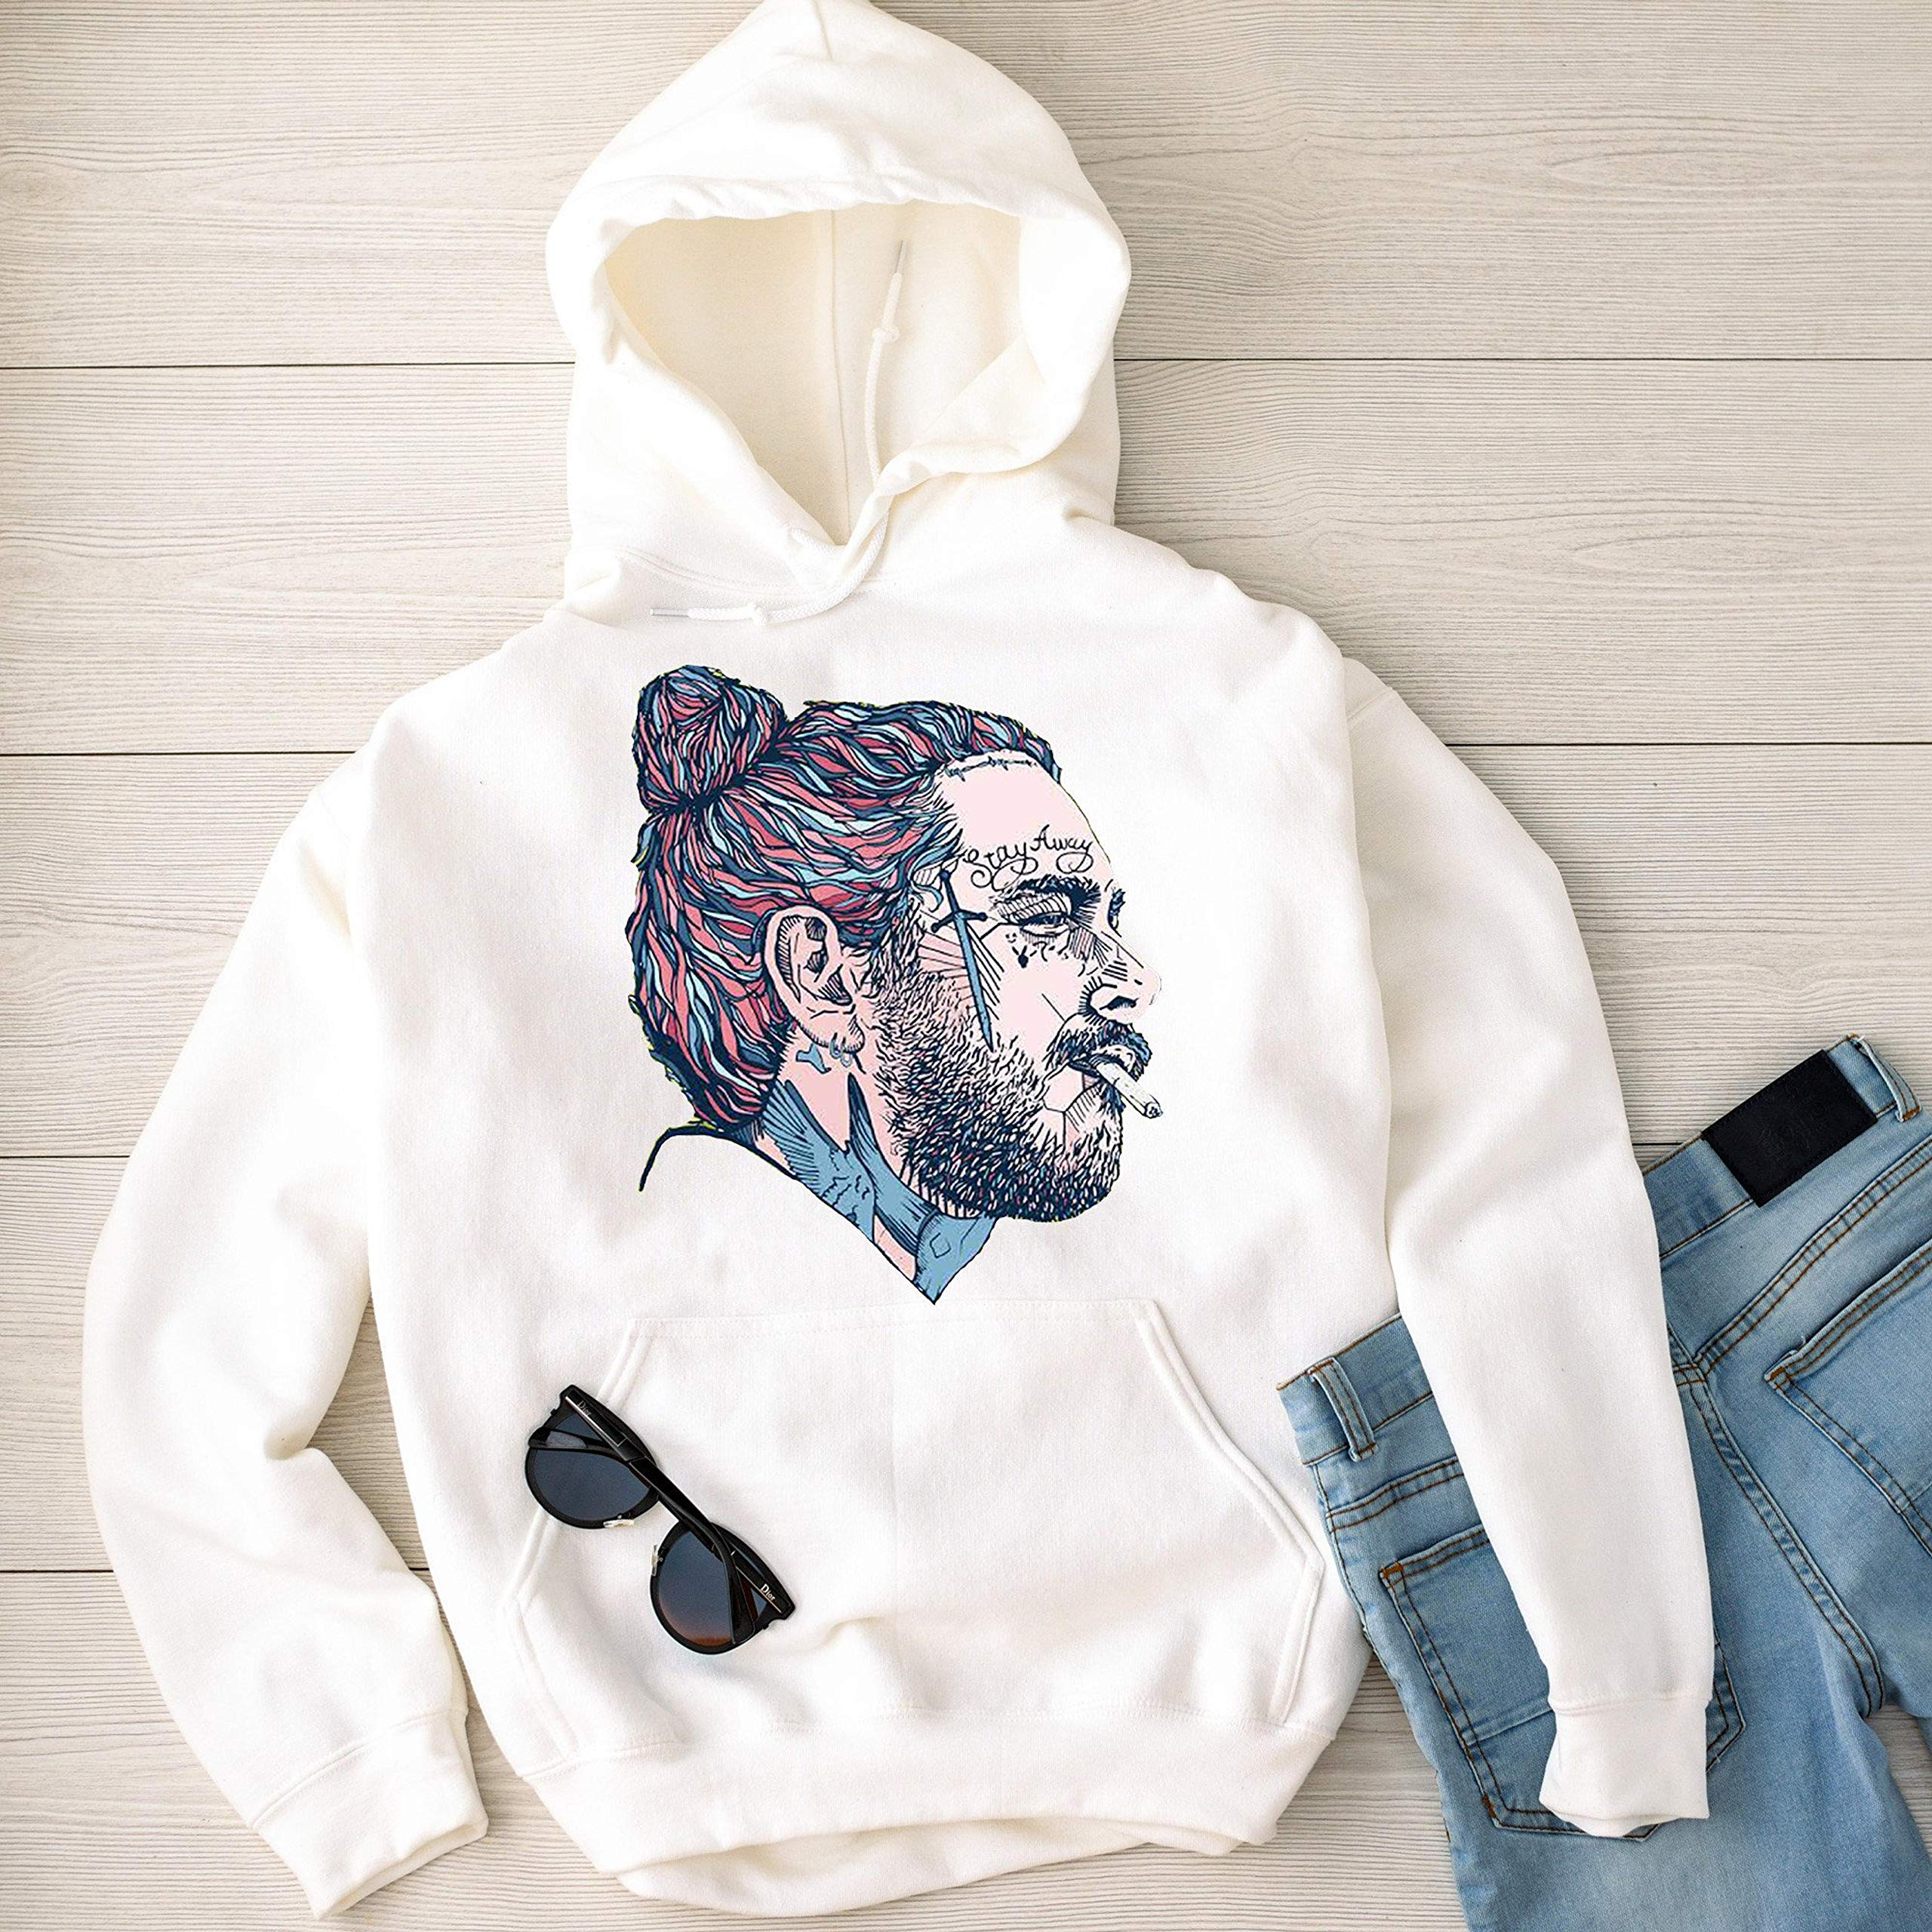 Post Malone Personalized Humor Short Sleeved For Man Black Leave Me Malone Unisex Clothes